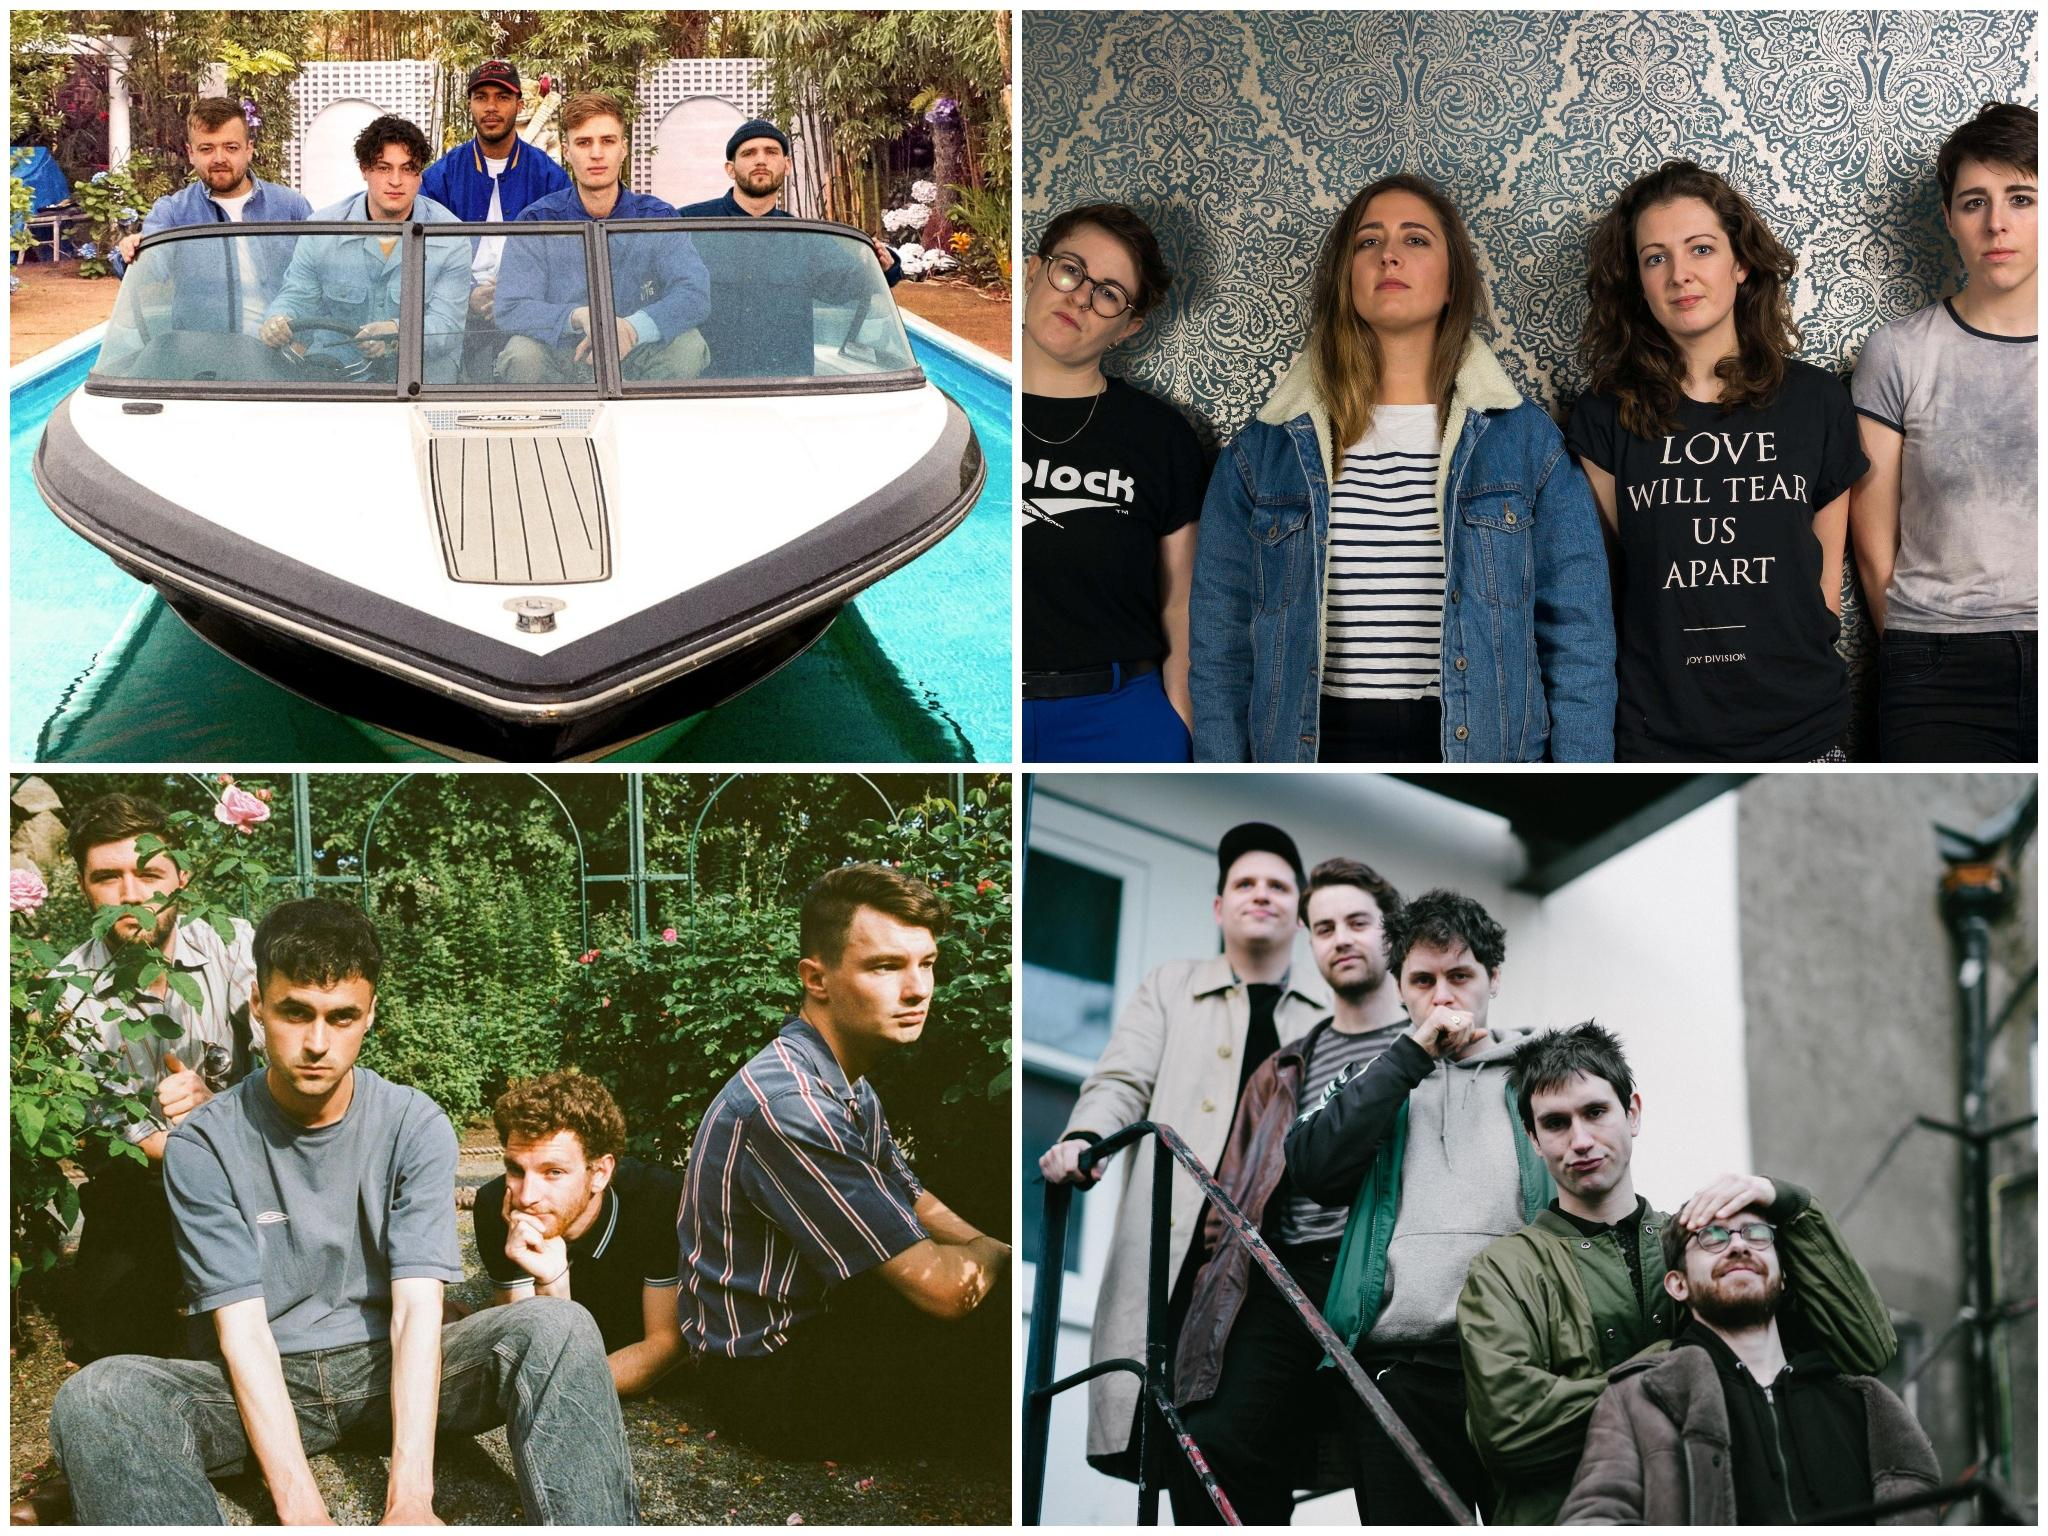 15 bands you should listen to in 2020